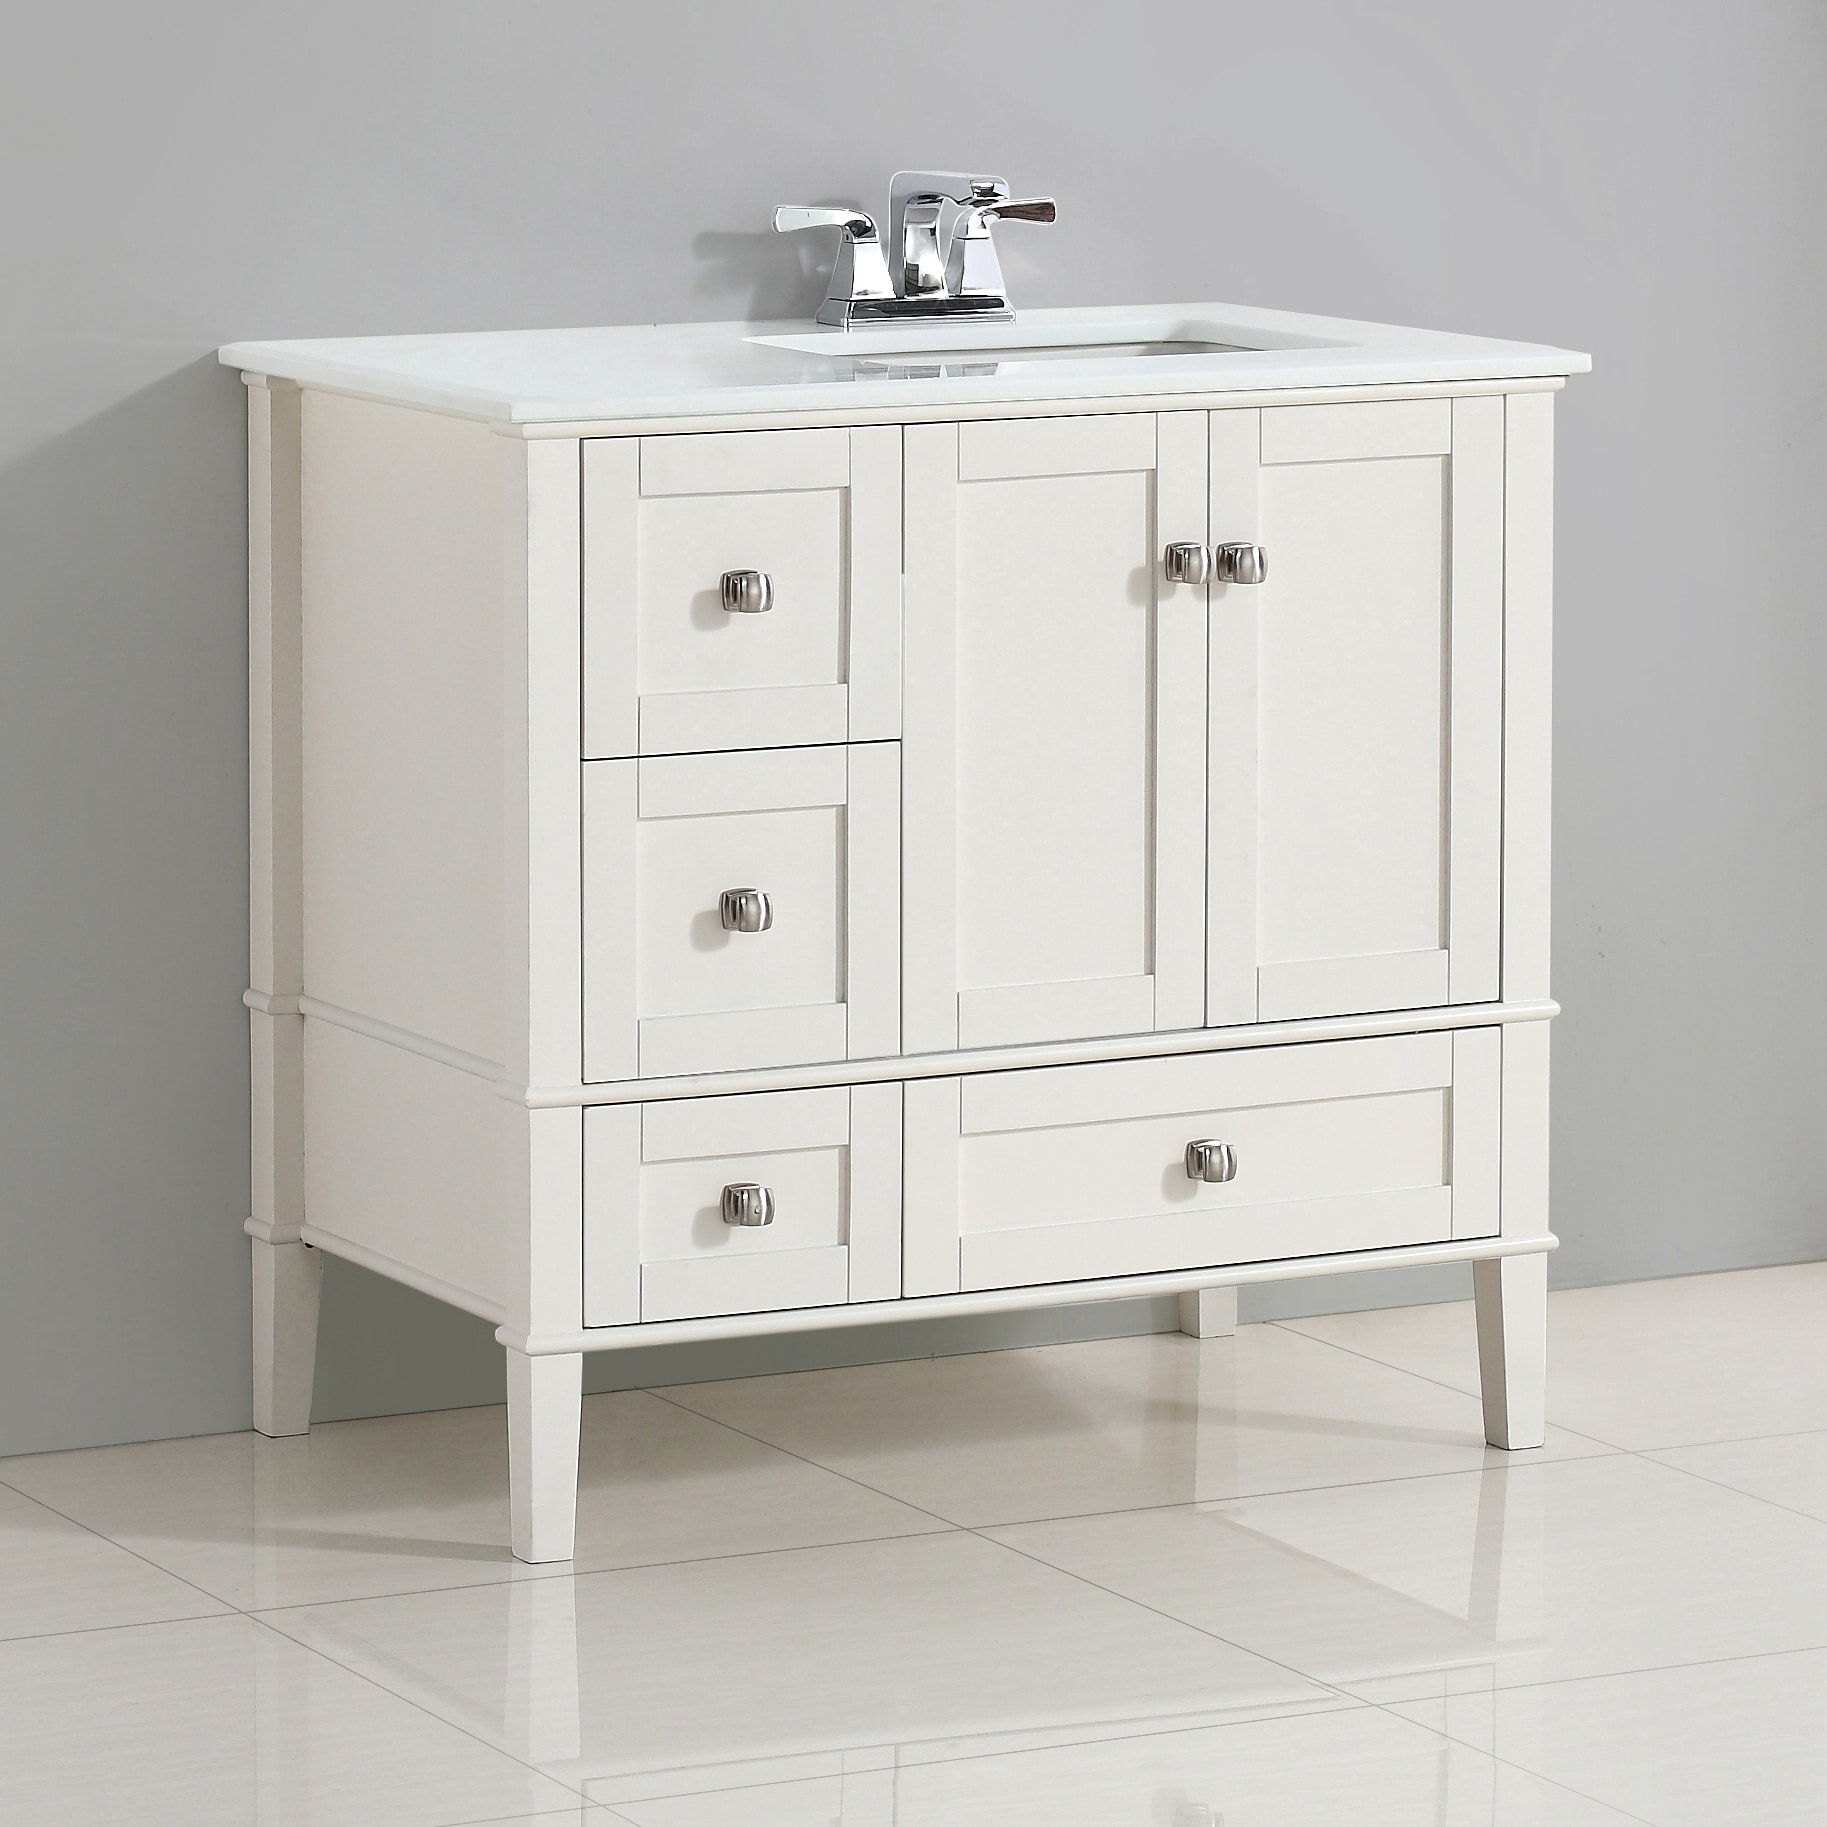 Wyndenhall Windham 36 Inch Contemporary Bath Vanity In Soft White With Engineered Quartz Marble Top